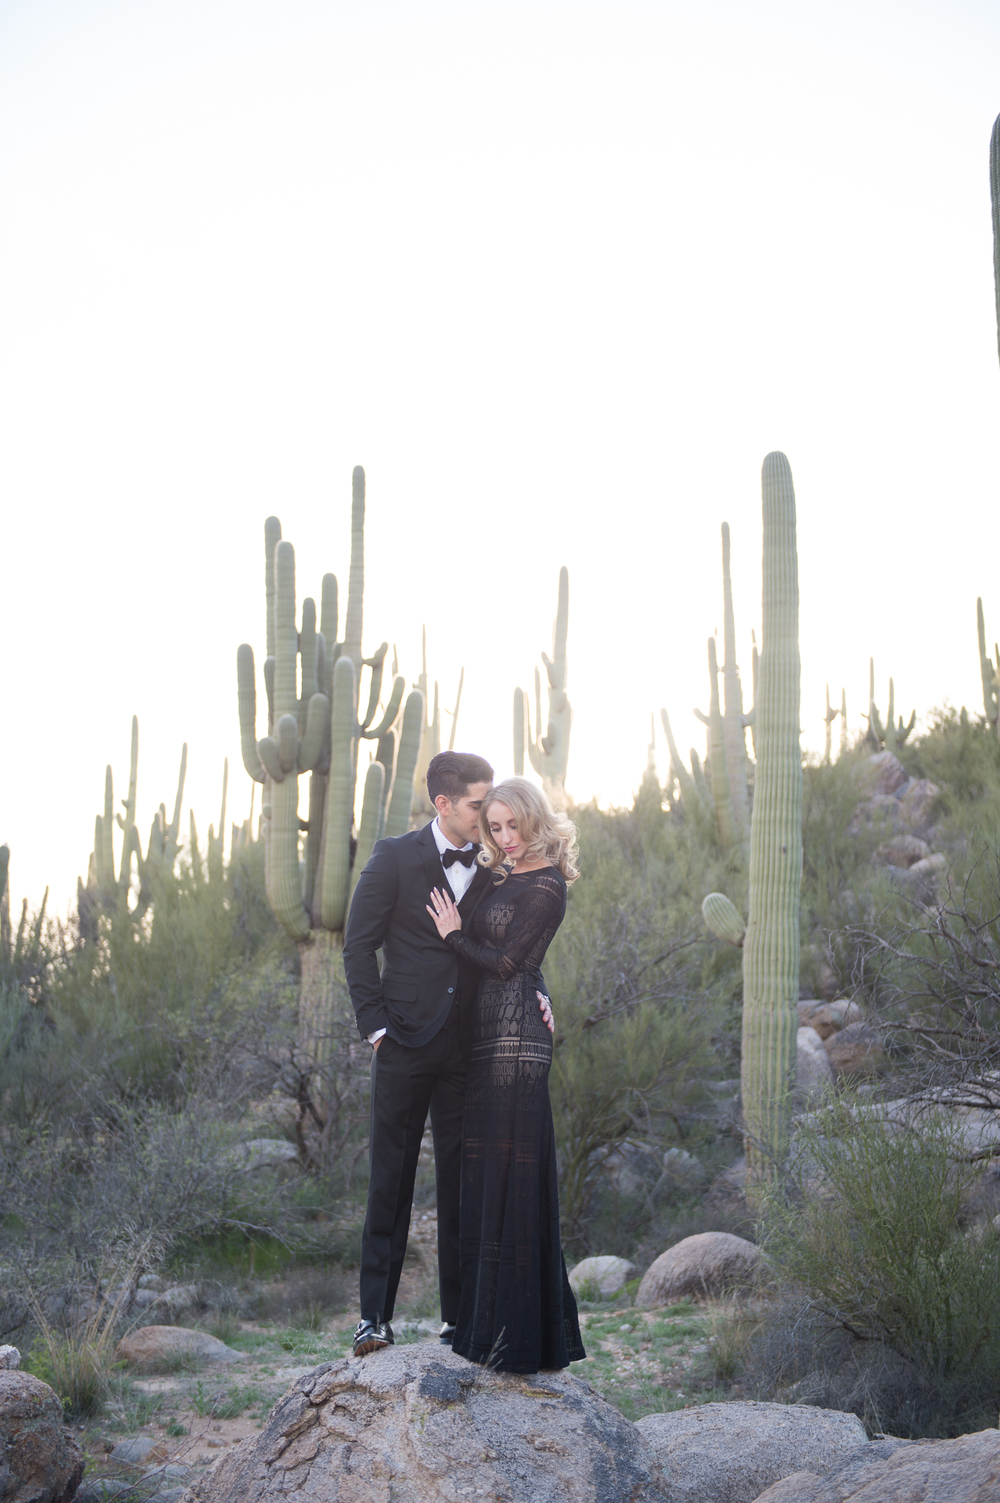 Formal-engagement-desert-love.jpg